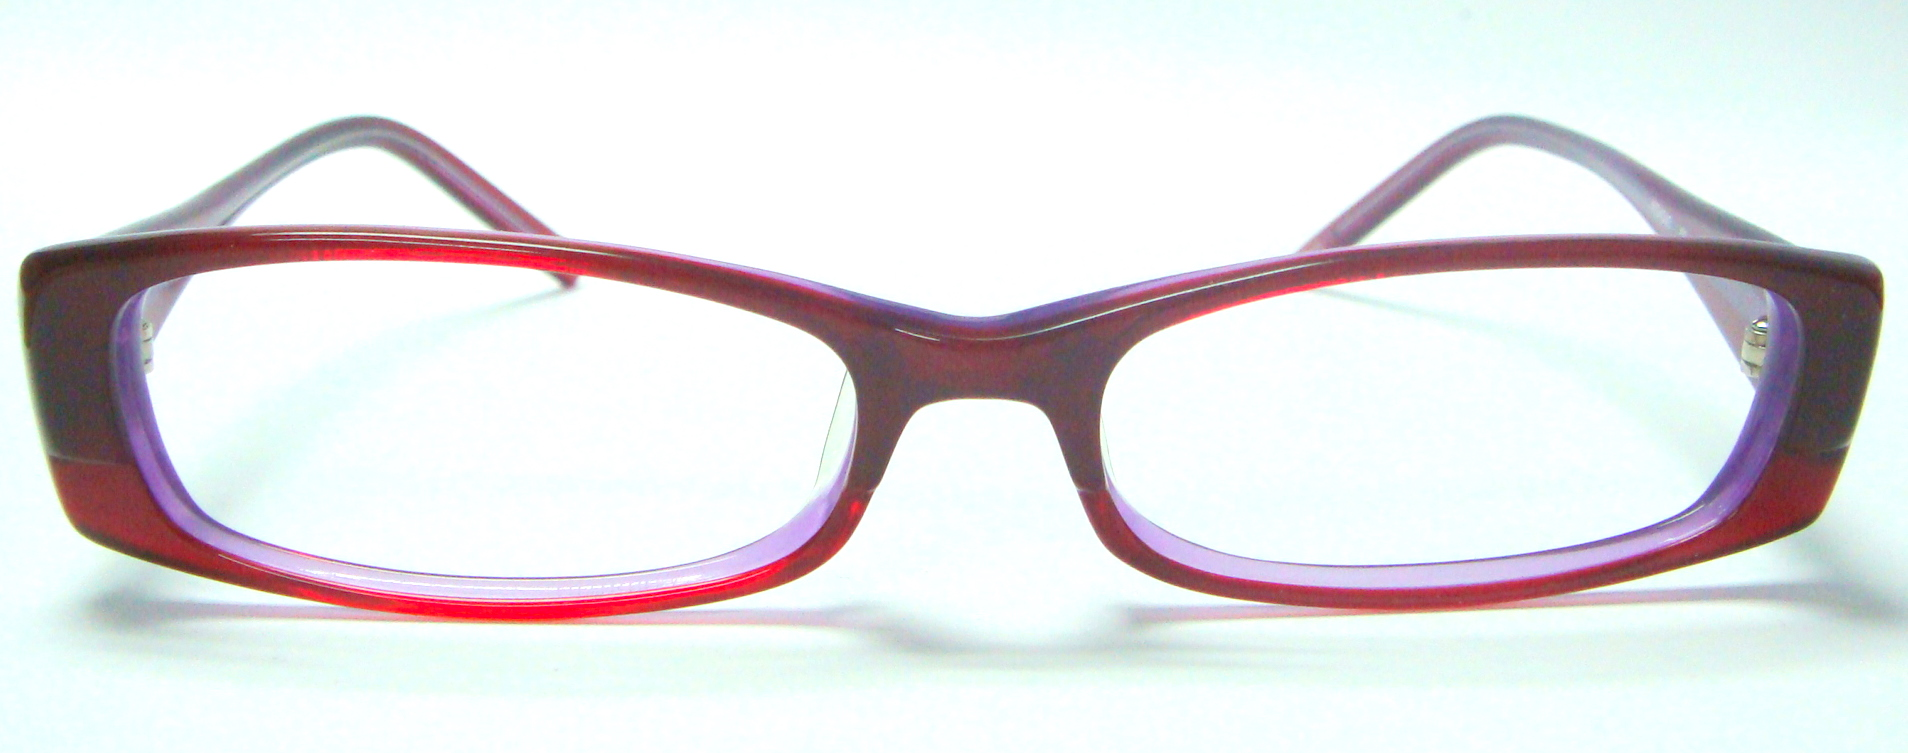 acetate frame ws4040 with prescription lens index 156